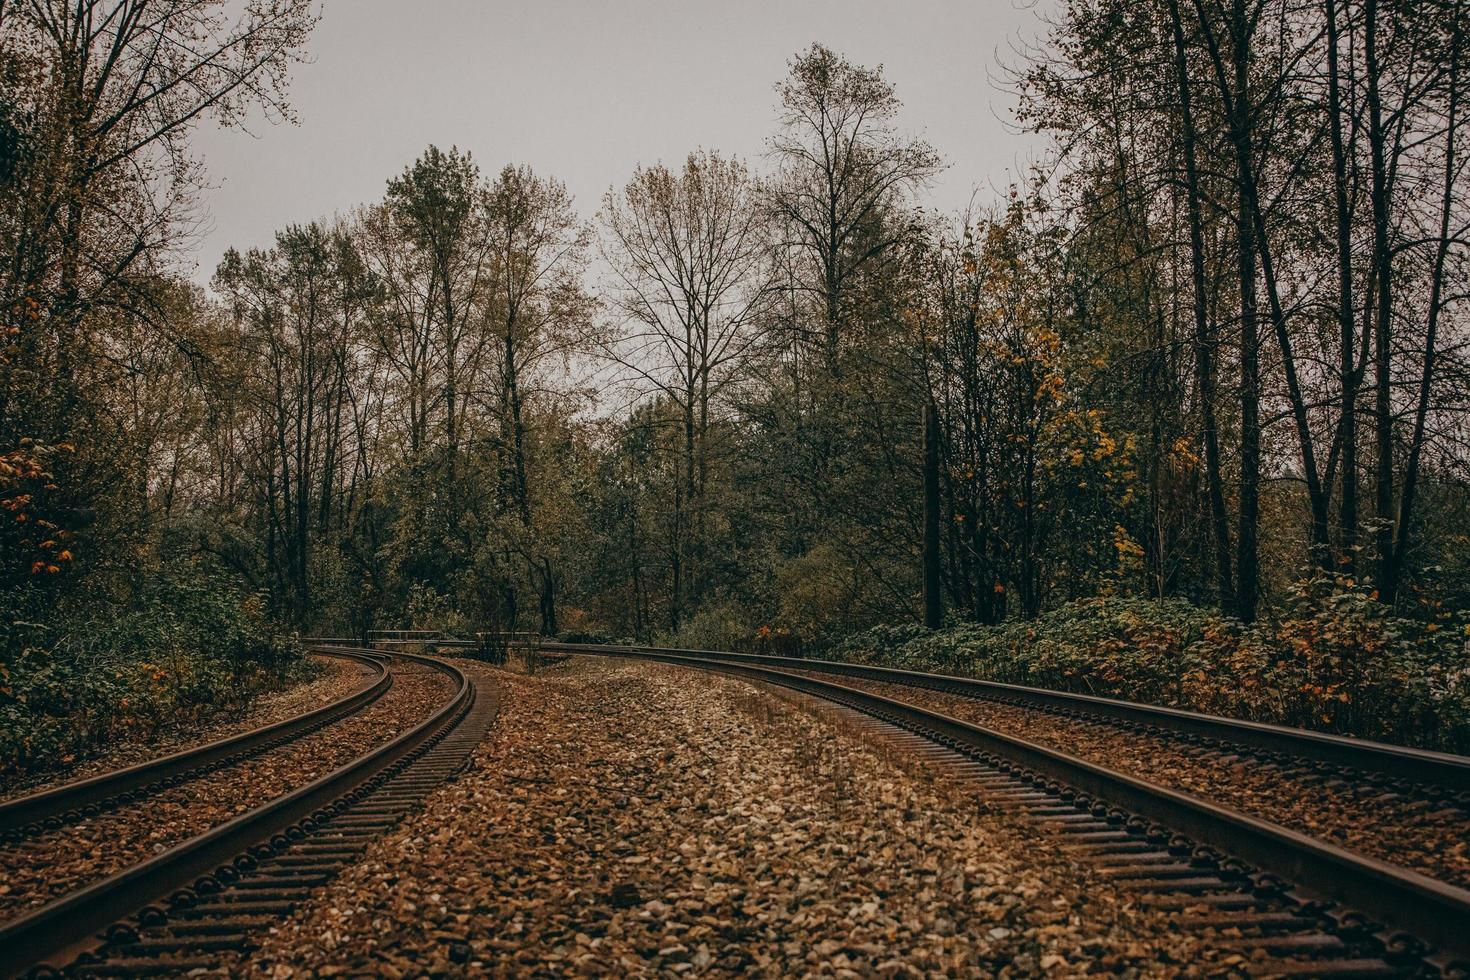 Brown fall leaves on the railroad during daytime photo